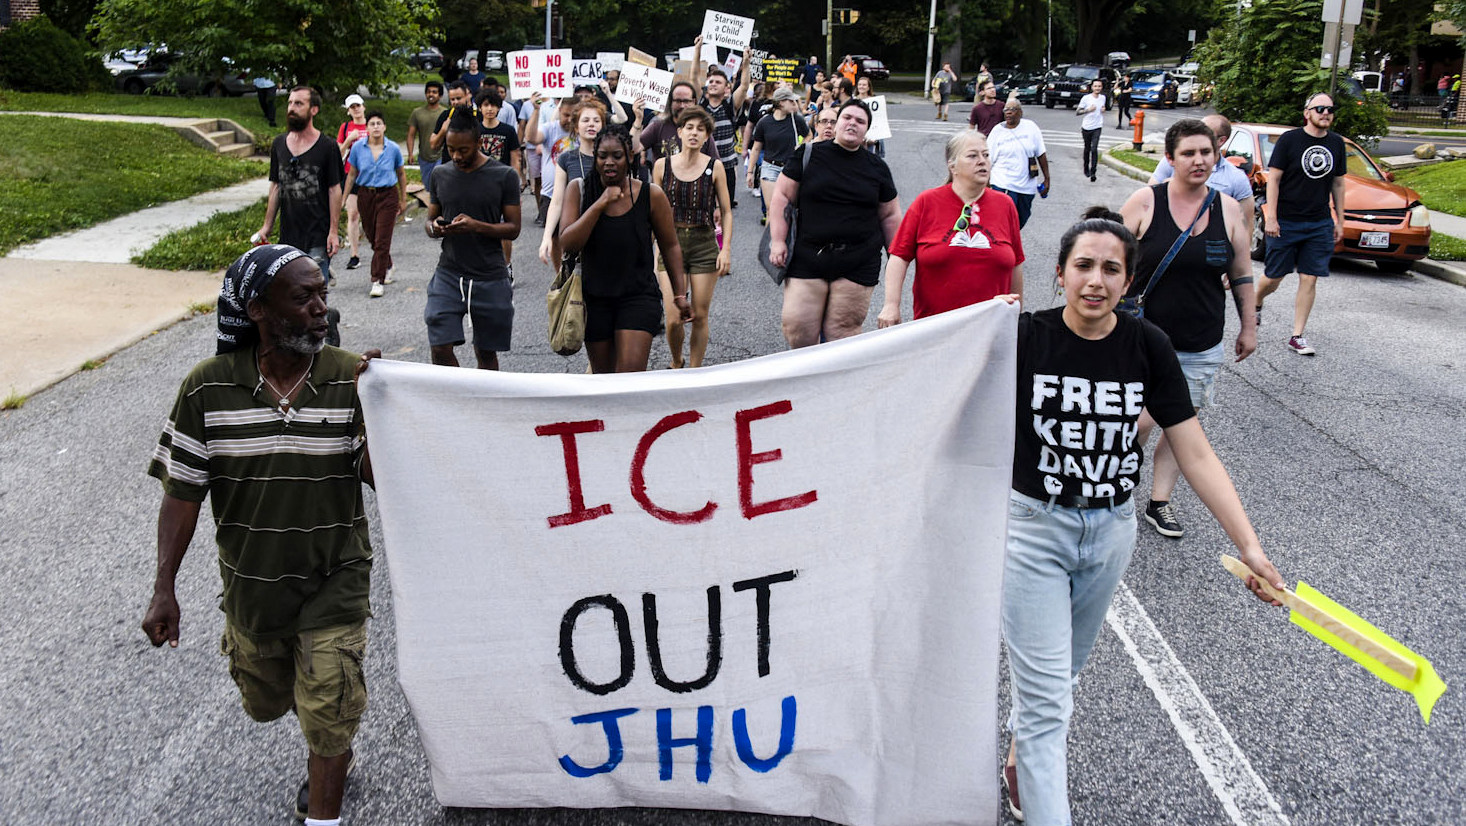 About 150 protesters marched around the Remington to protest Hopkins private police force plan ICE contracts. (J.M. Giordano)